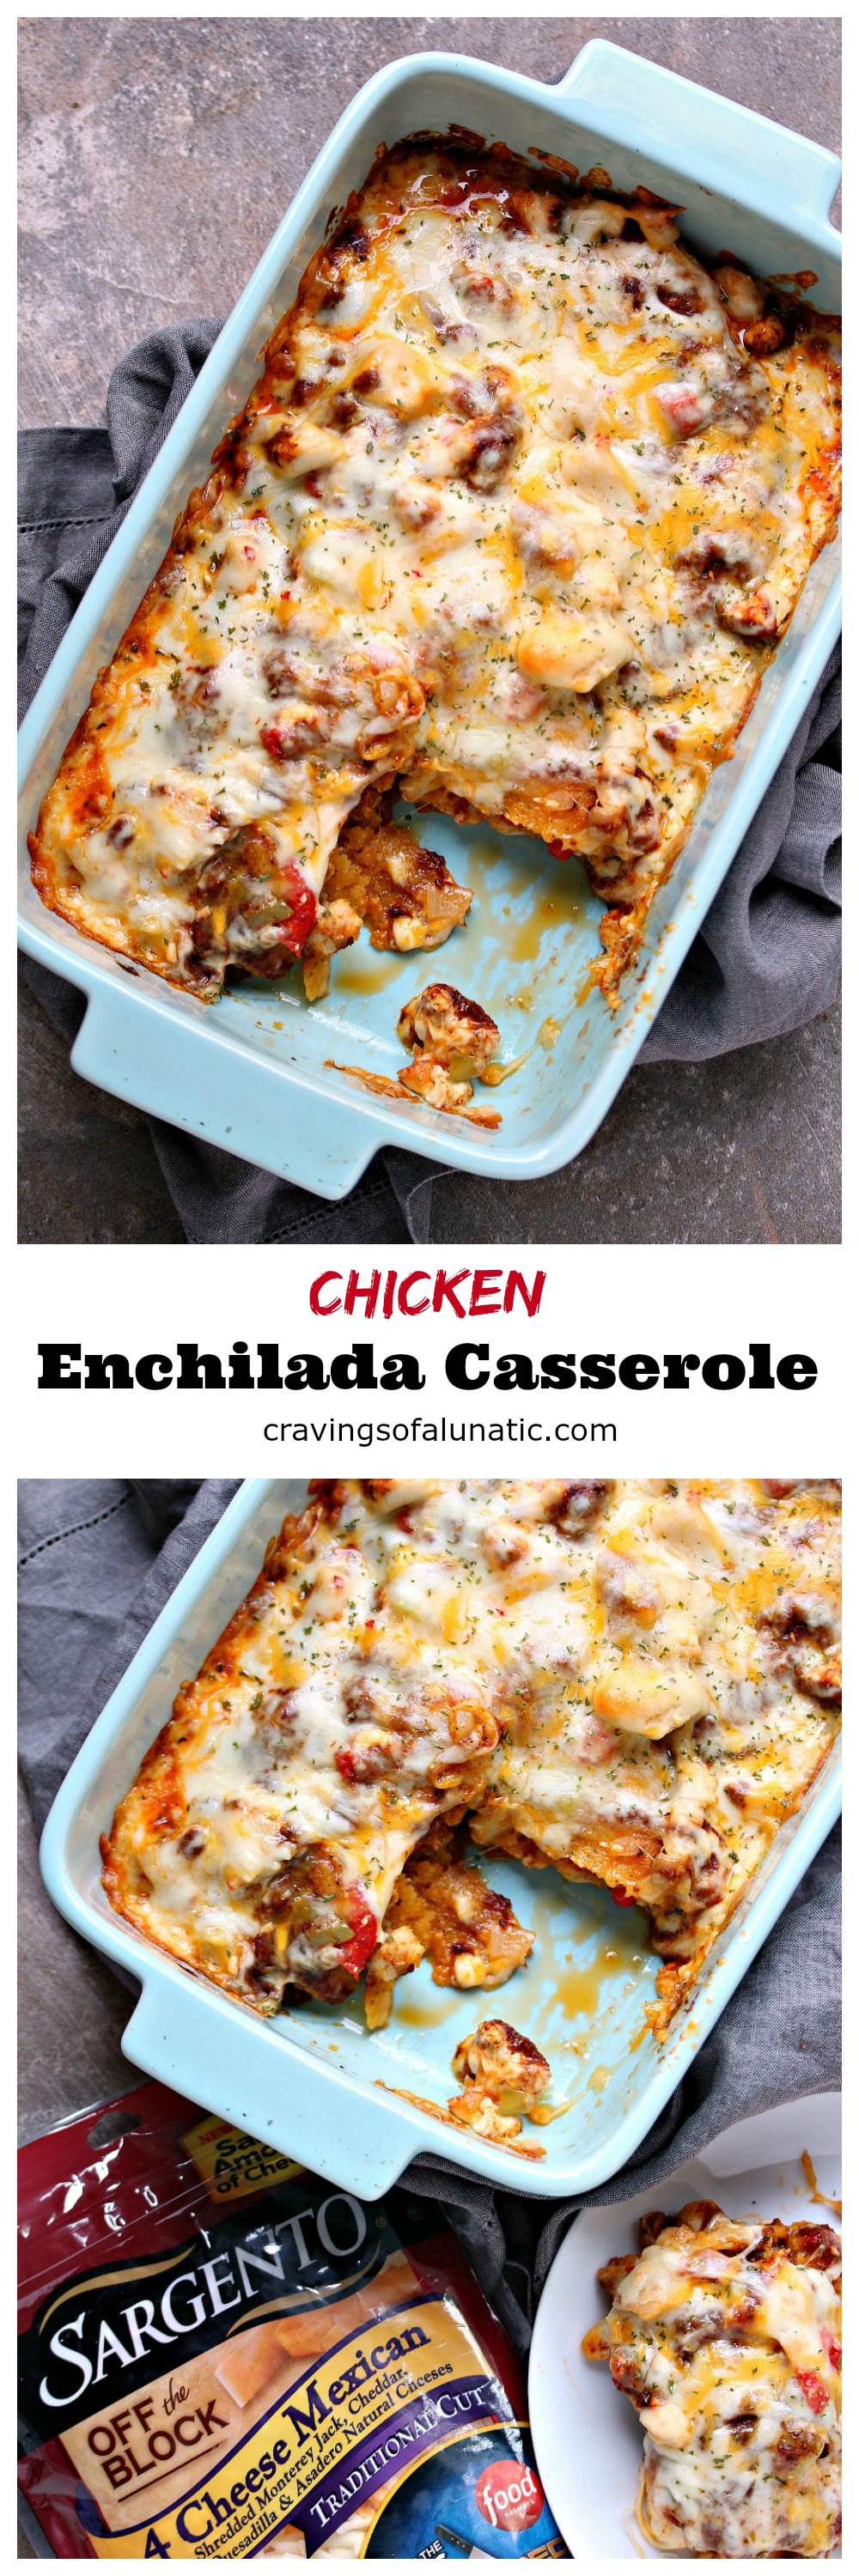 Chicken Enchilada Casserole from cravingsofalunatic.com- This scrumptious Chicken Enchilada Casserole is layered with corn tortillas, chicken, Poblano peppers, enchilada sauce, and Sargento cheese. It's a hit with everyone who tastes it. (@CravingsLunatic)